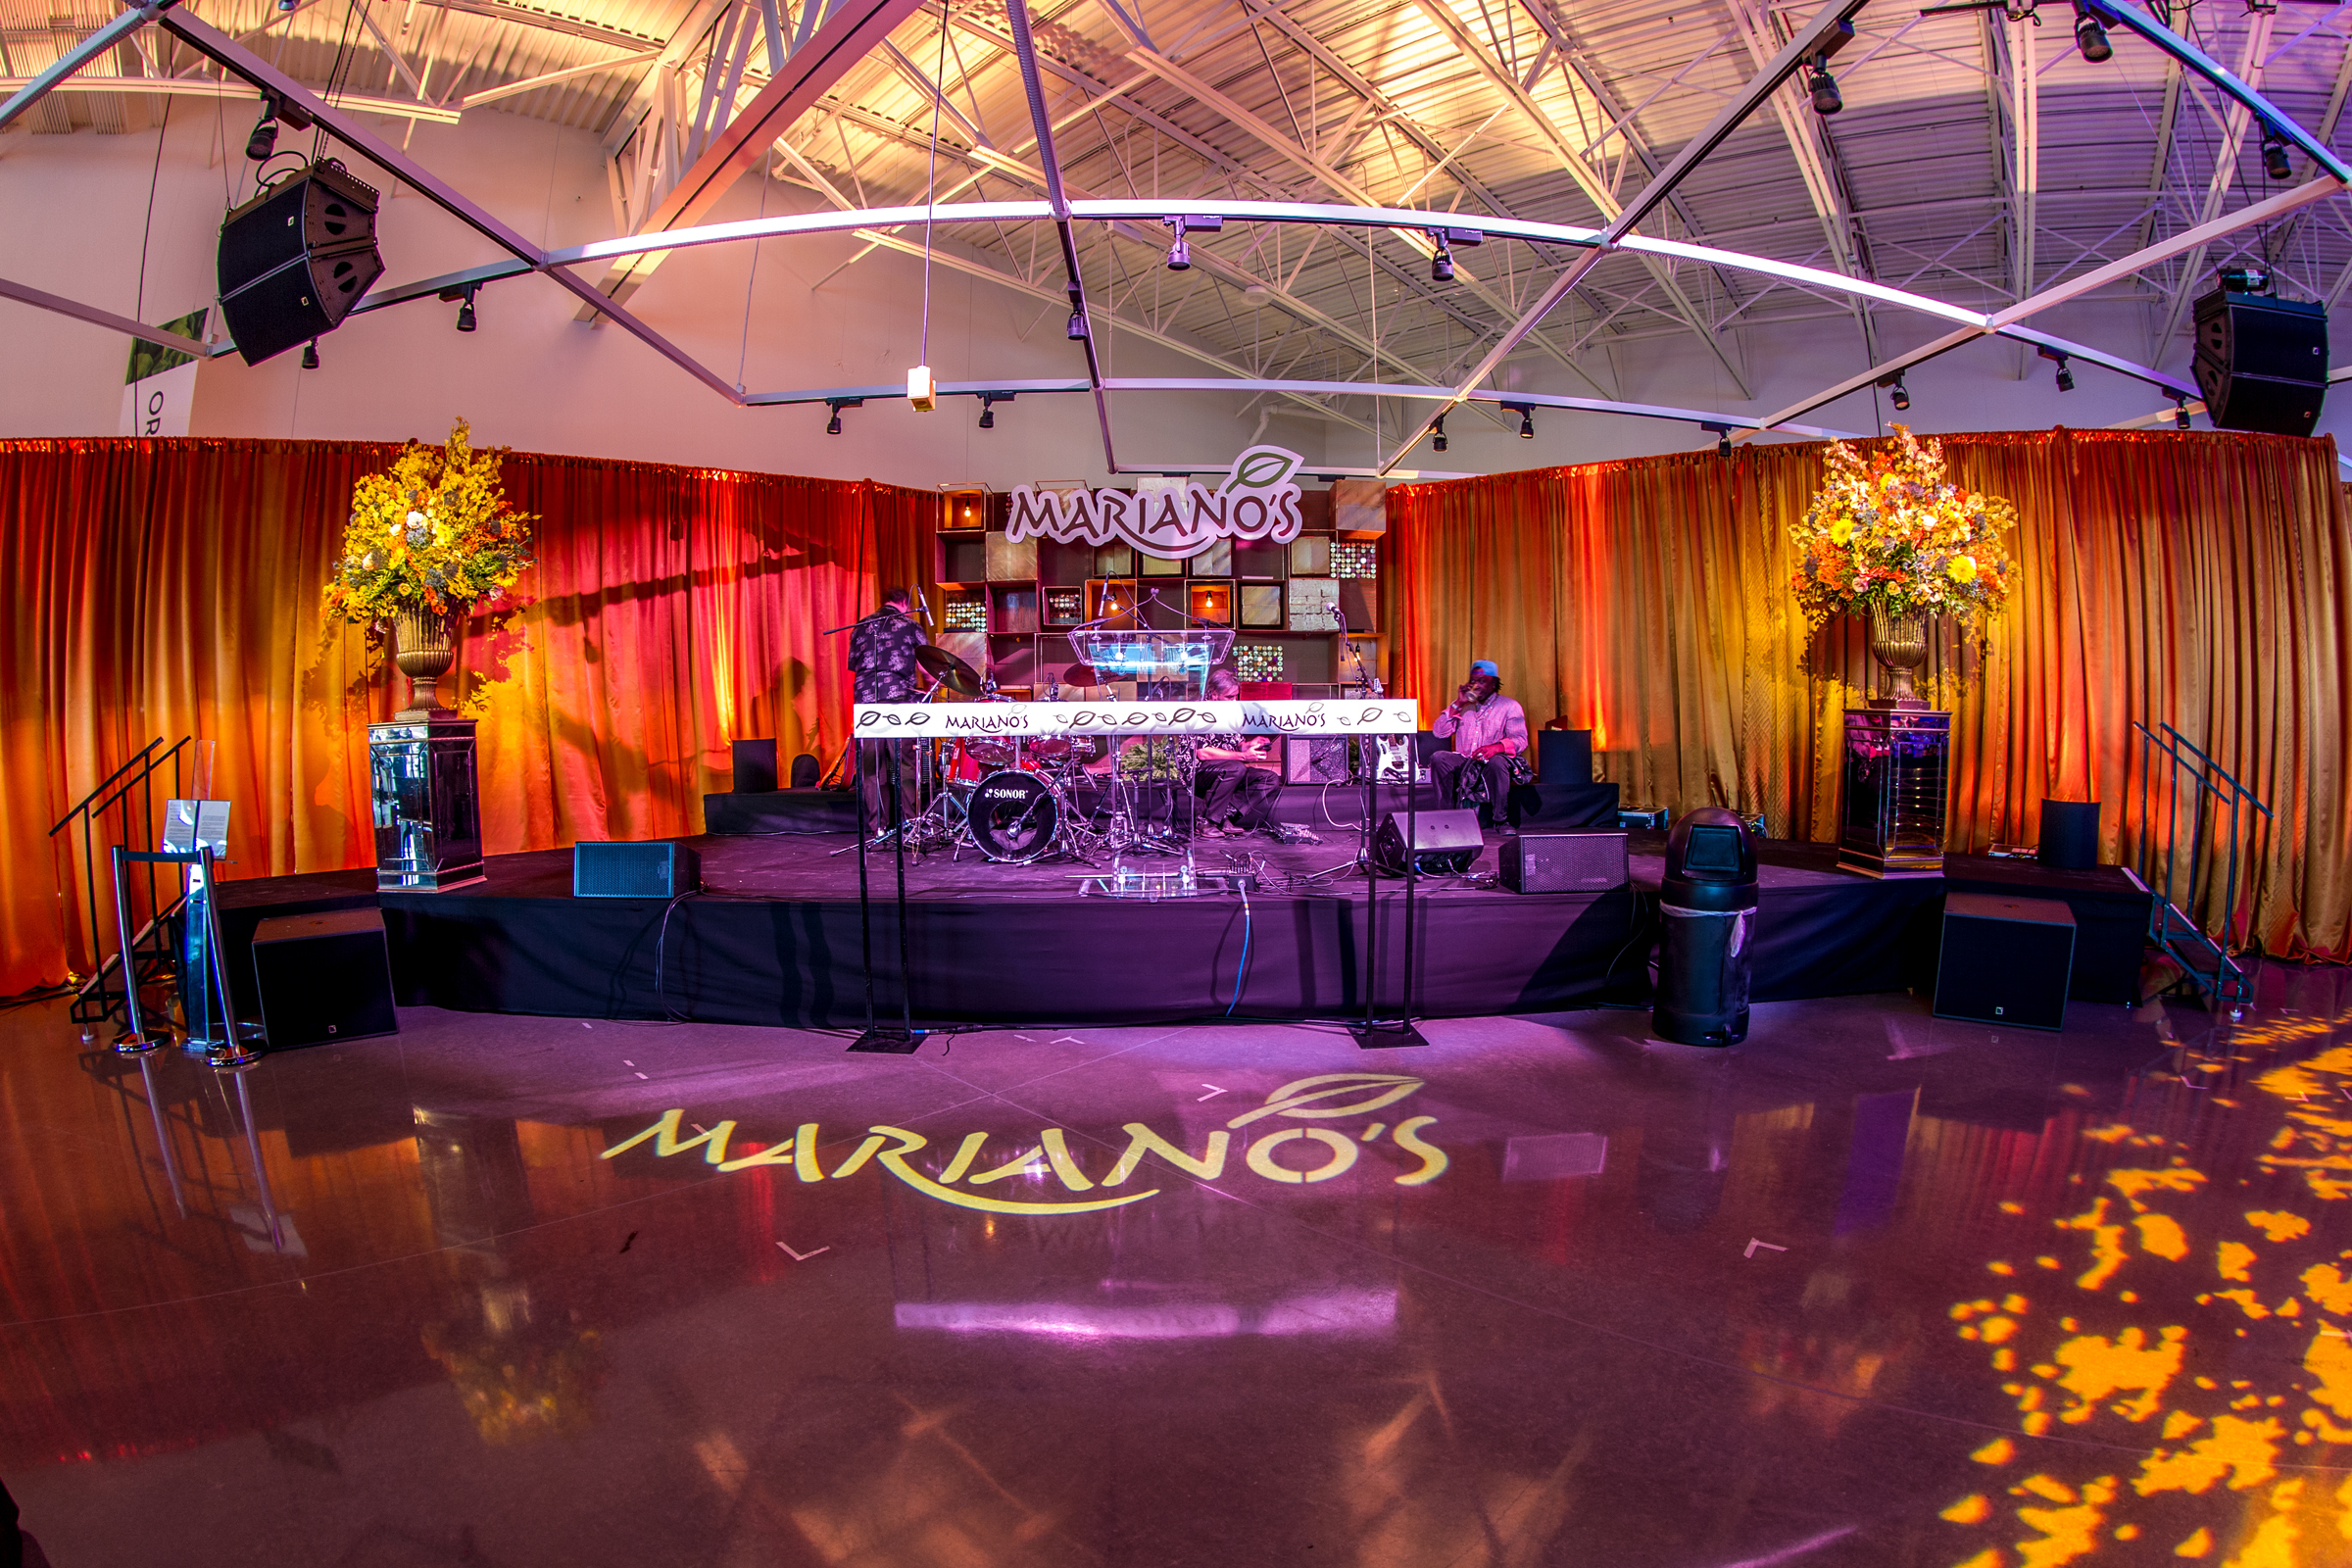 MARIANO'S BRONZEVILLE GRAND OPENING - Kehoe Designs